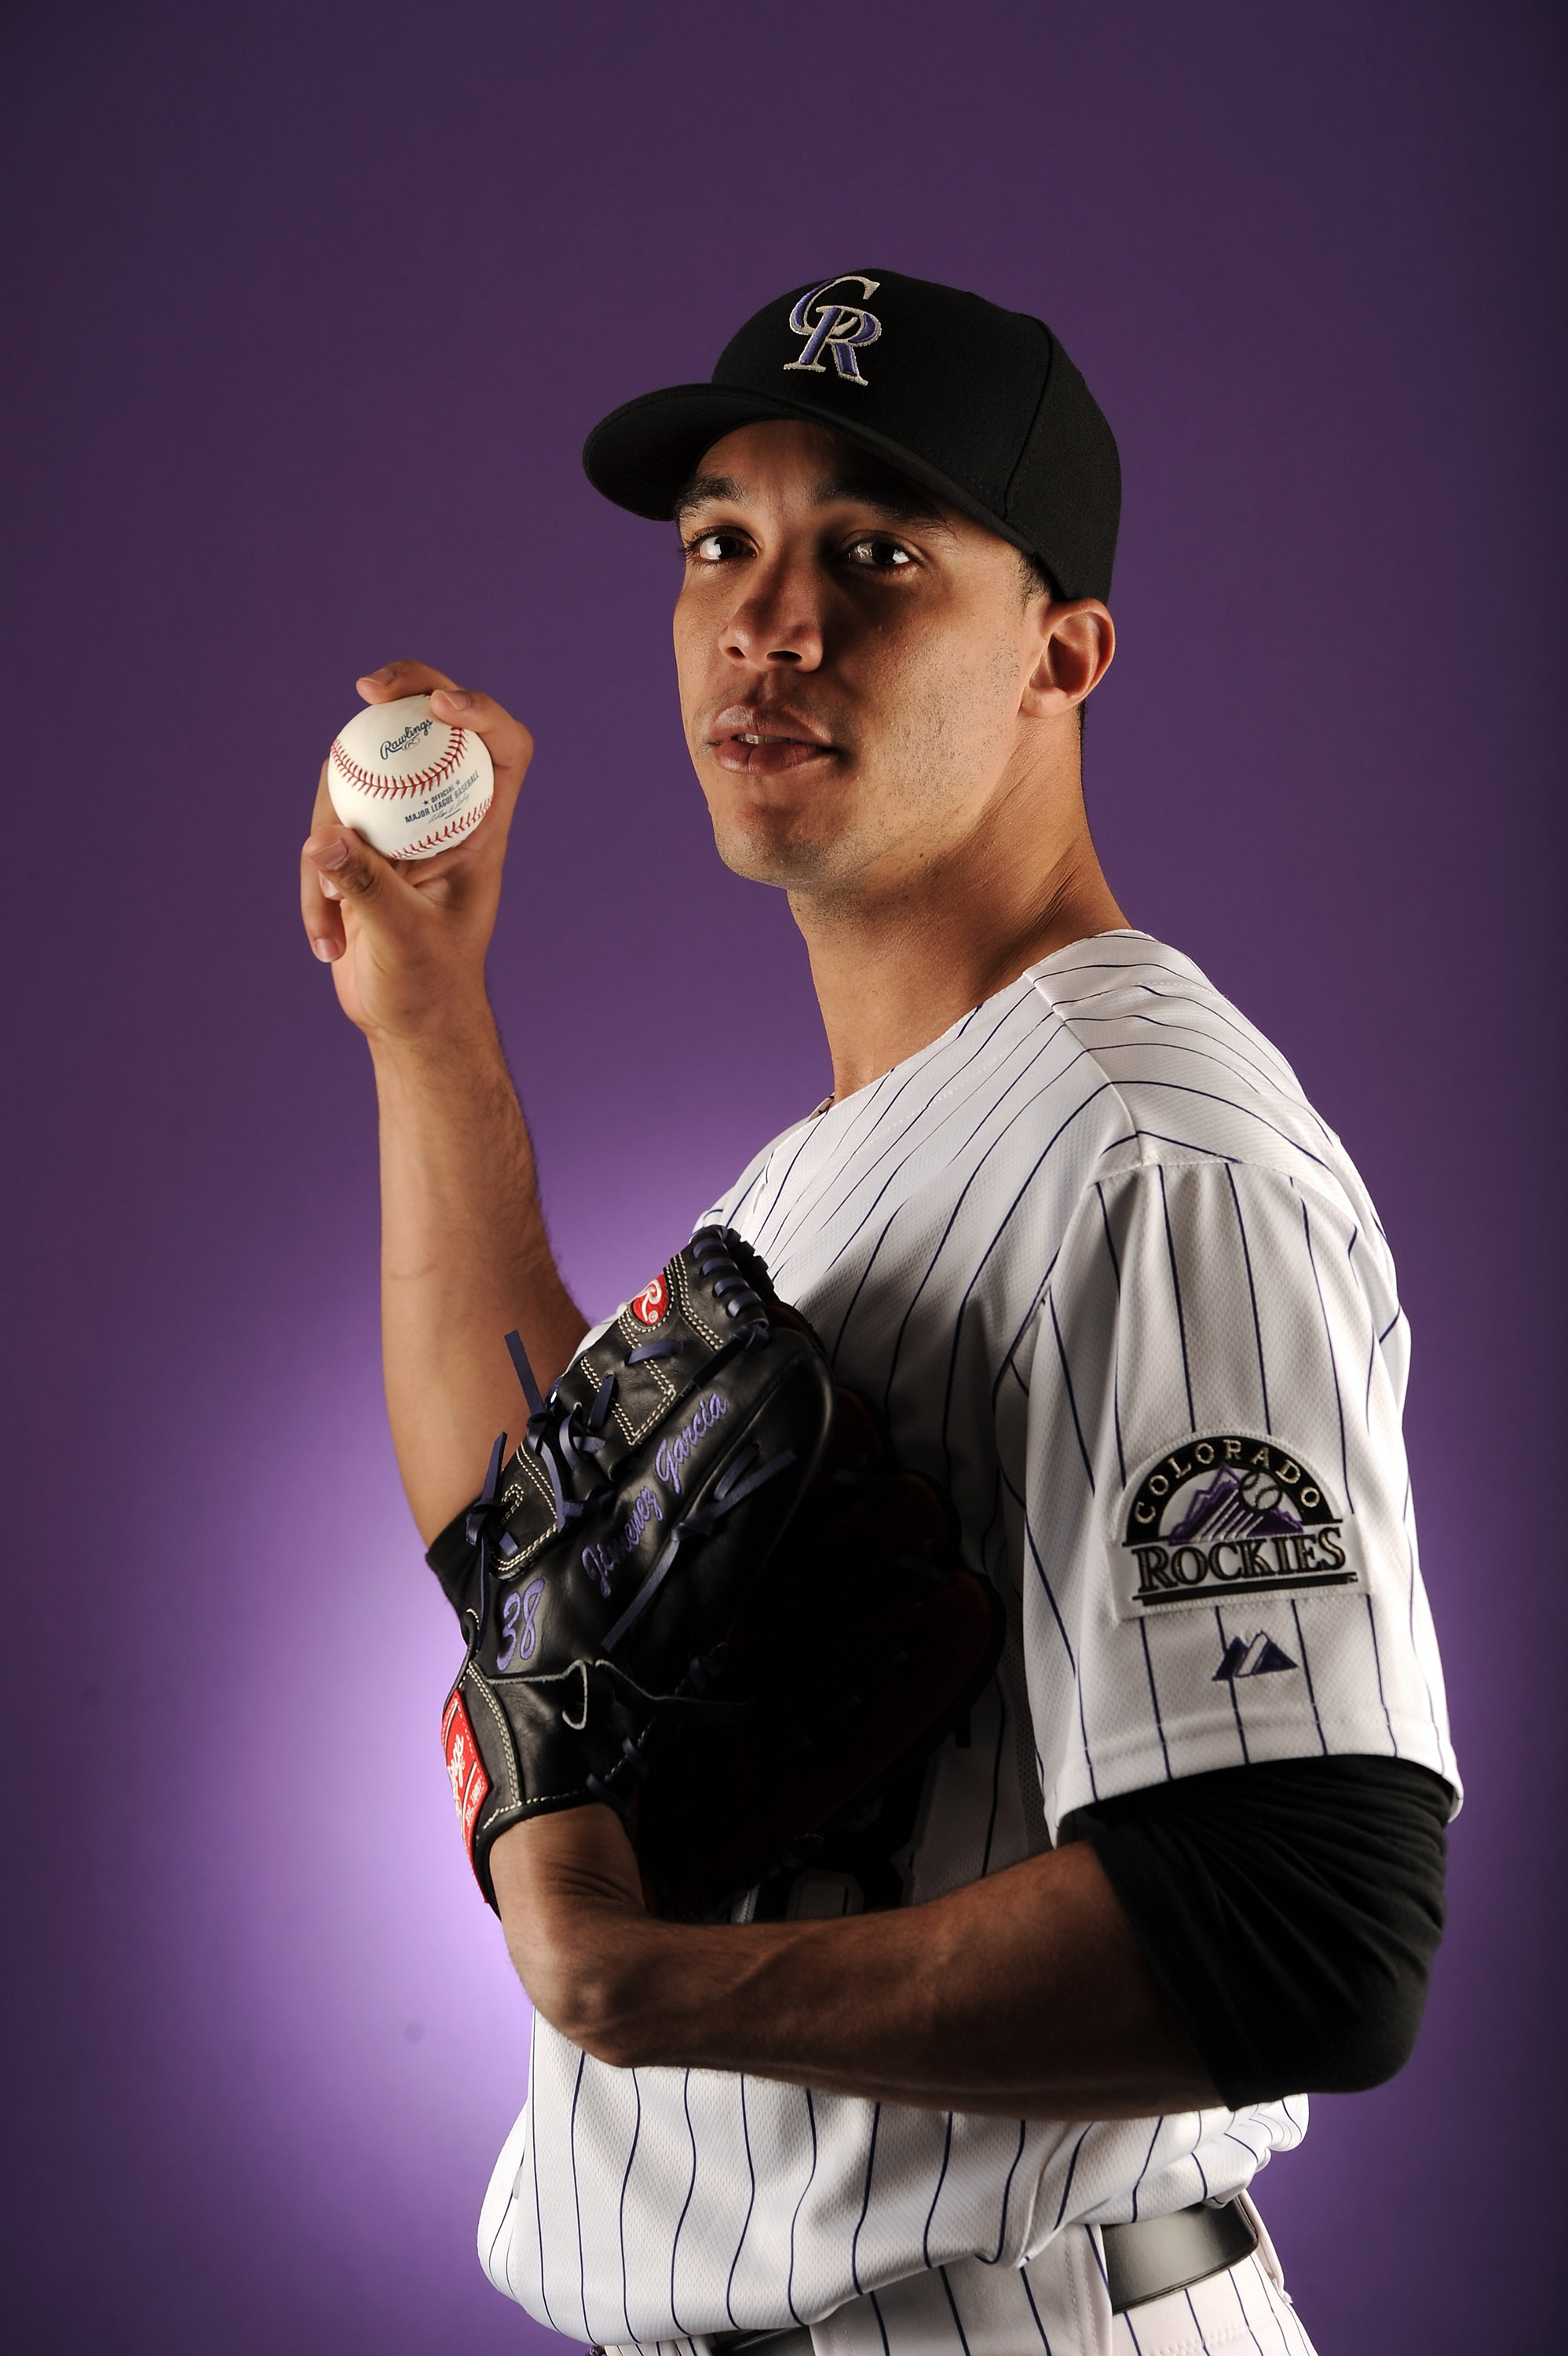 SCOTTSDALE, AZ - FEBRUARY 24:  Ubaldo Jimenez #38 of the Colorado Rockies poses for a portrait during photo day at the Salt River Fields at Talking Stick on February 24, 2011 in Scottsdale, Arizona.  (Photo by Harry How/Getty Images)